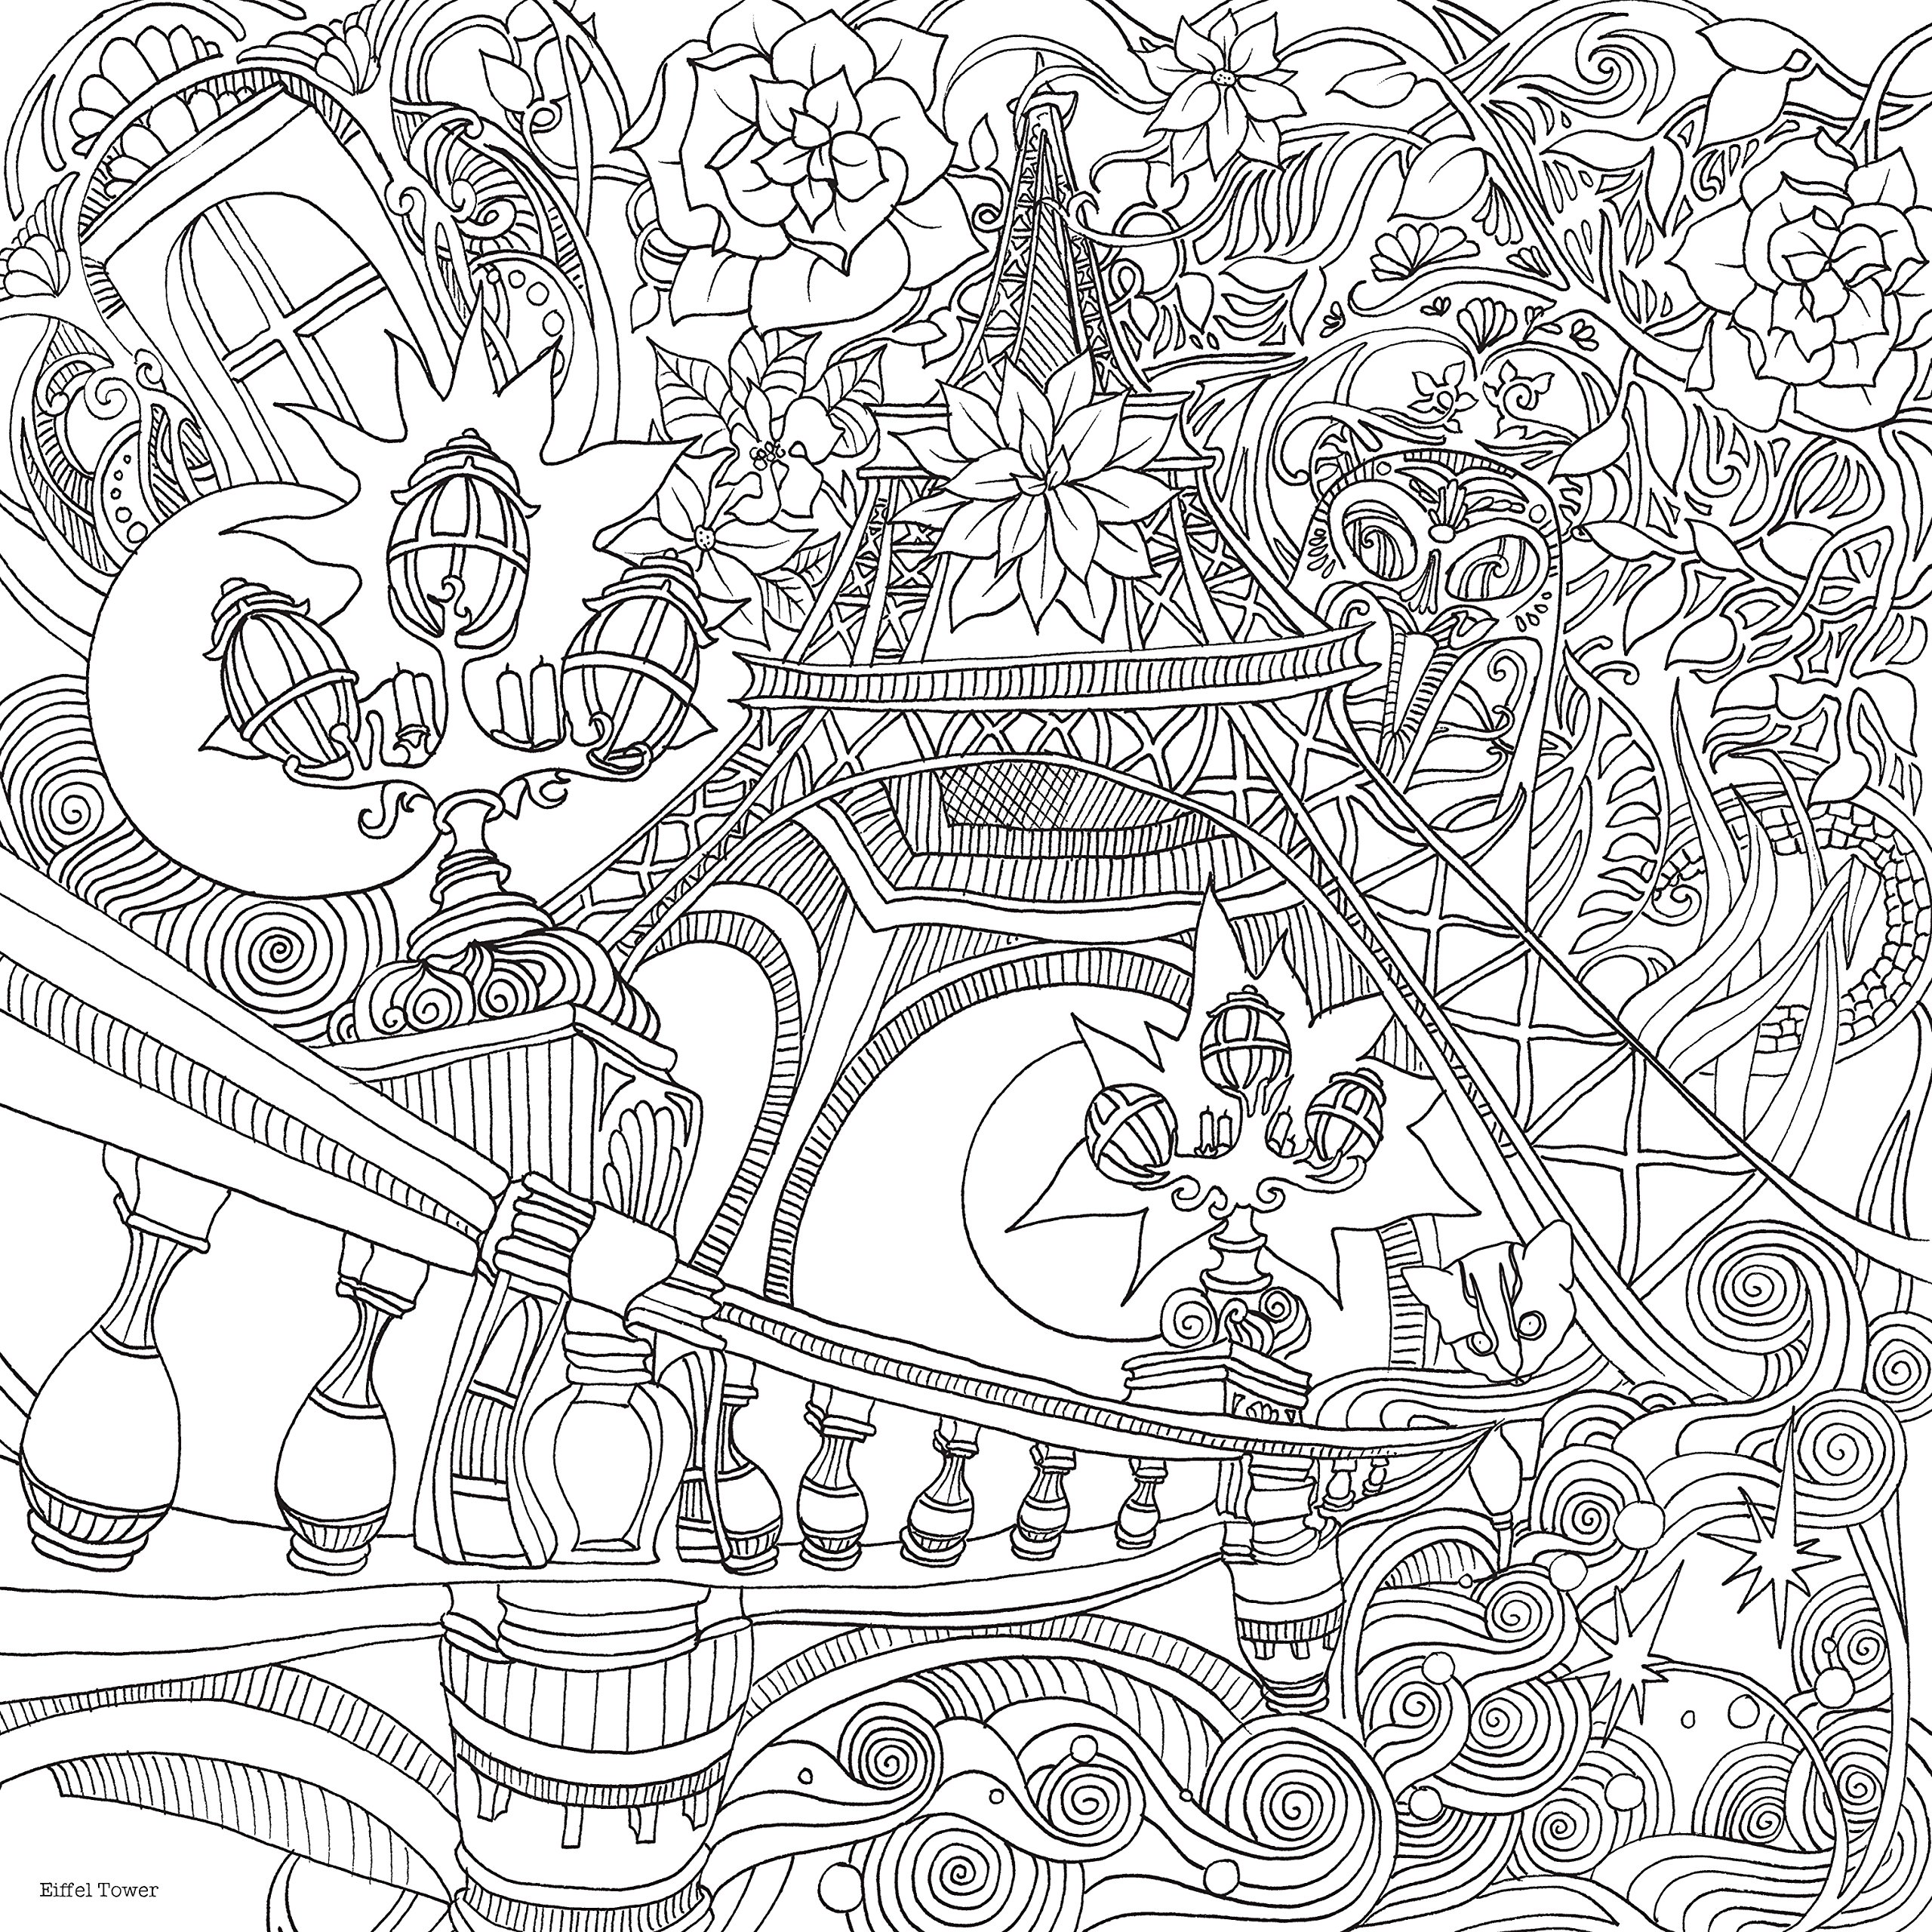 2560x2560 The Magical City A Colouring Book